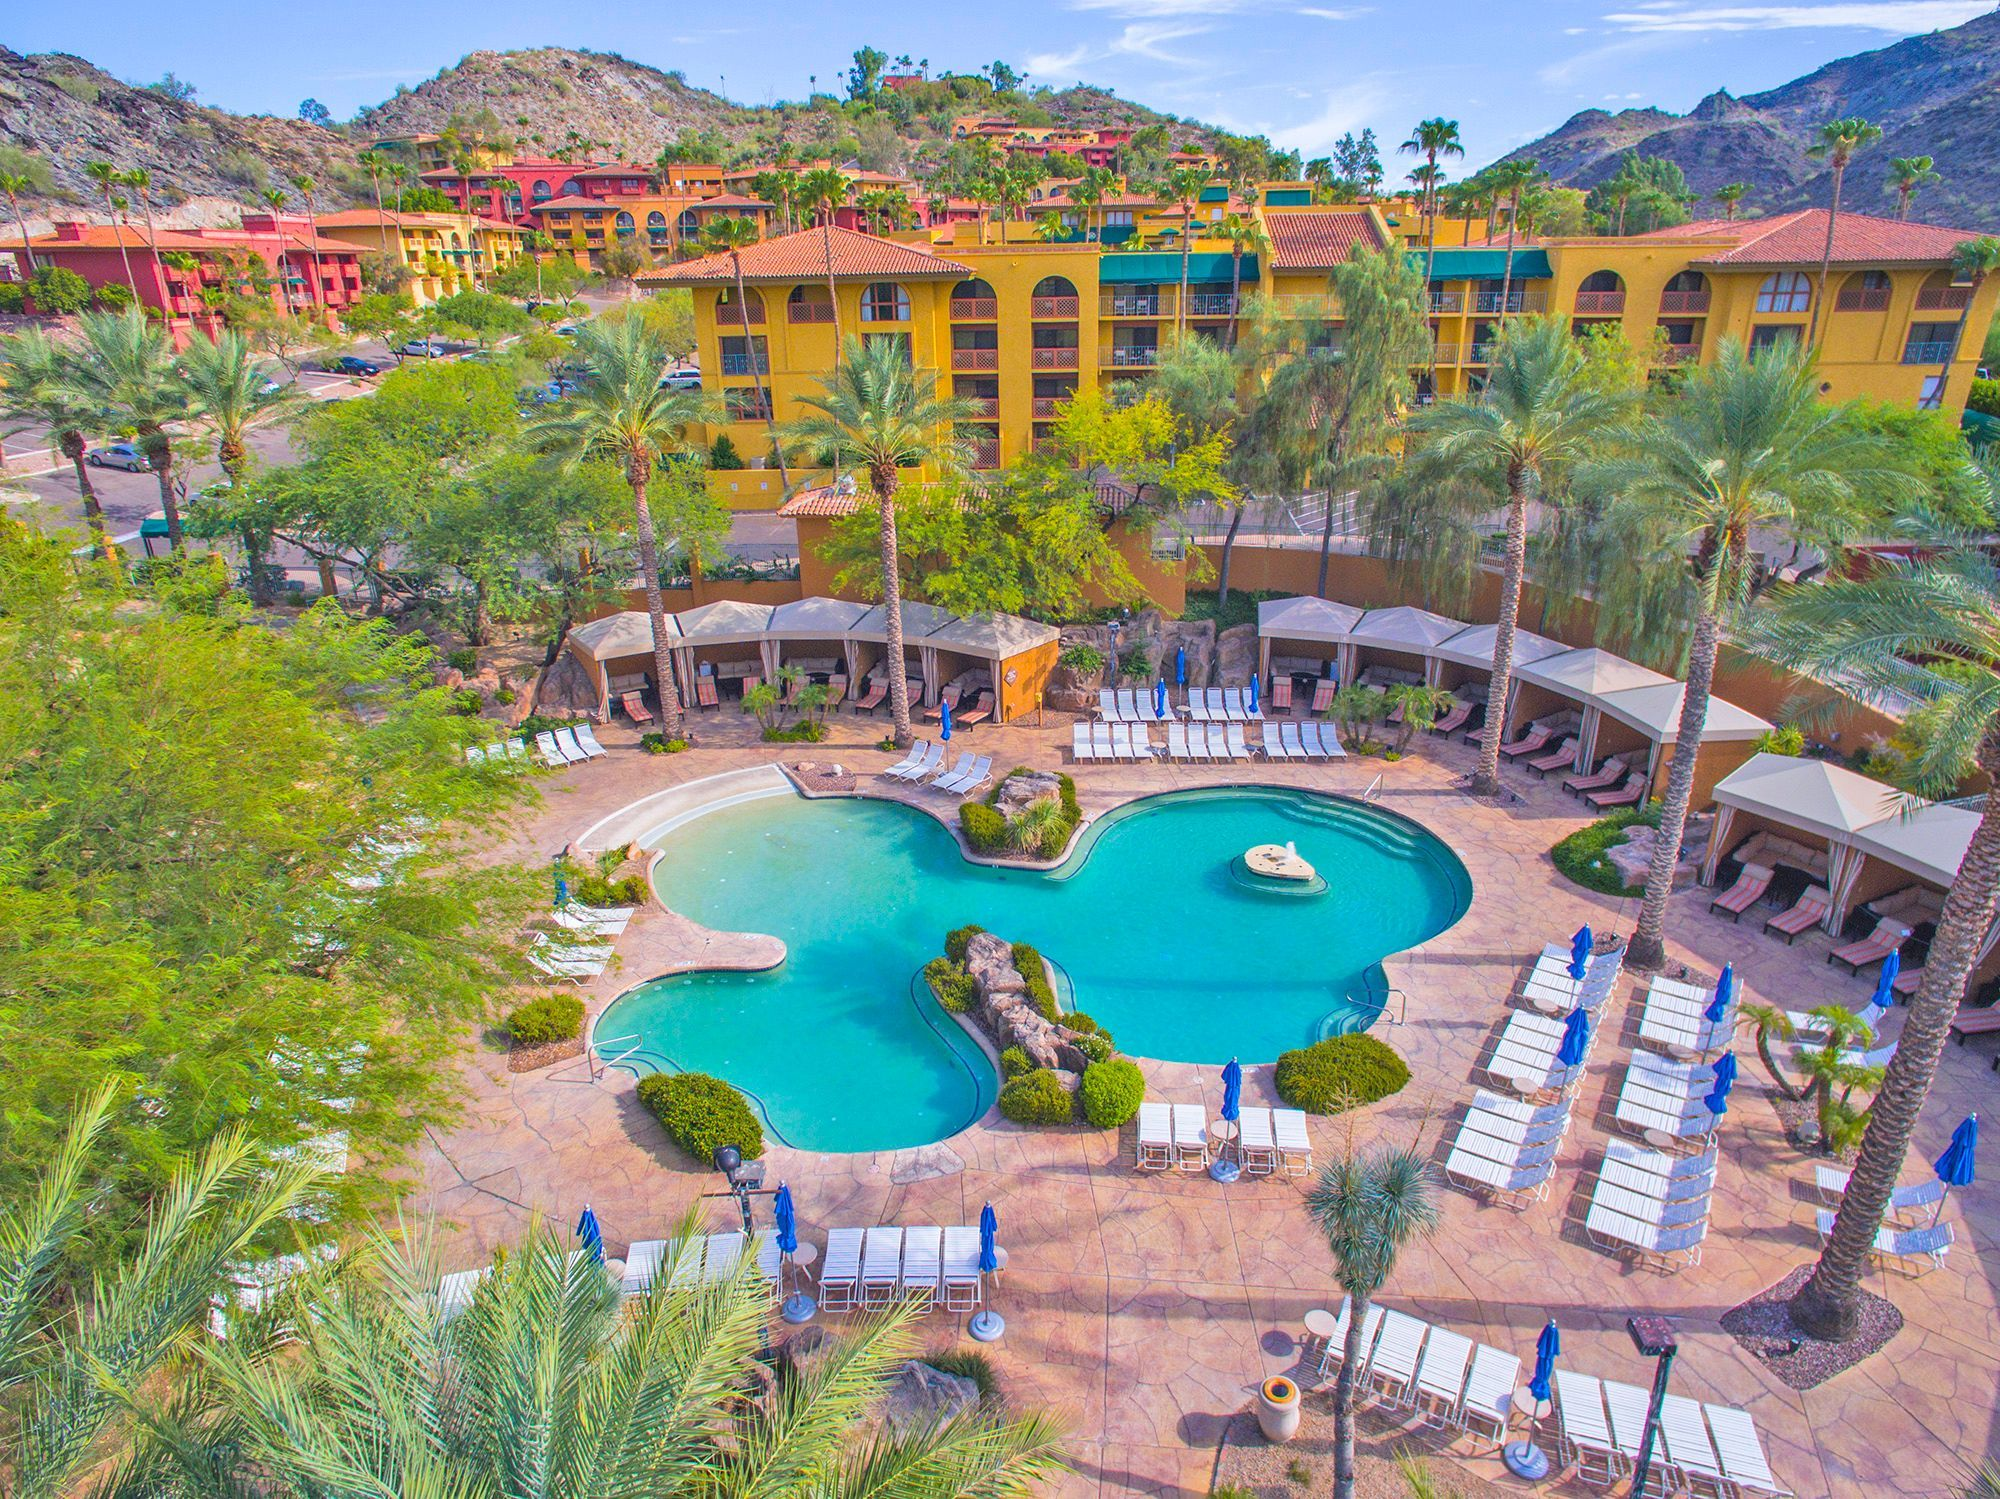 Pointe Hilton Tapatio Cliffs |   Deal: Rates starting at $110 per night.   Activities: Poolside games and movies, Wildlife World Zoo visits, salsa challenges, scavenger hunts and   dining and drink specials.  Details: 602-866-7500, tapatiocliffshilton.com.